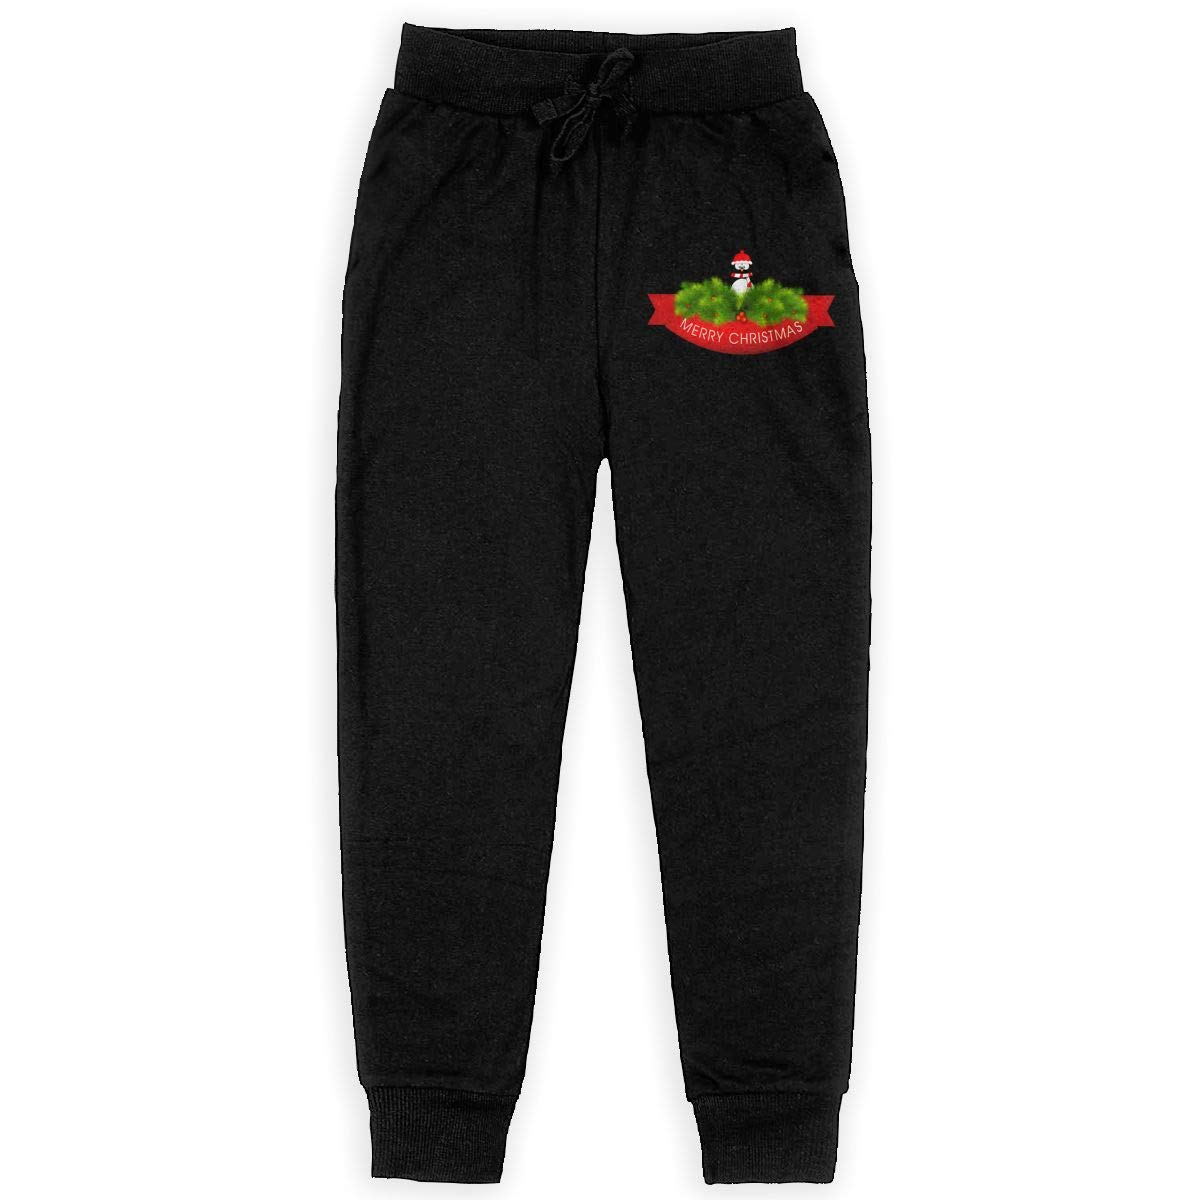 IufnNRJndfu Christmas Penguin Boys Athletic Smart Fleece Pant Youth Soft and Cozy Sweatpants